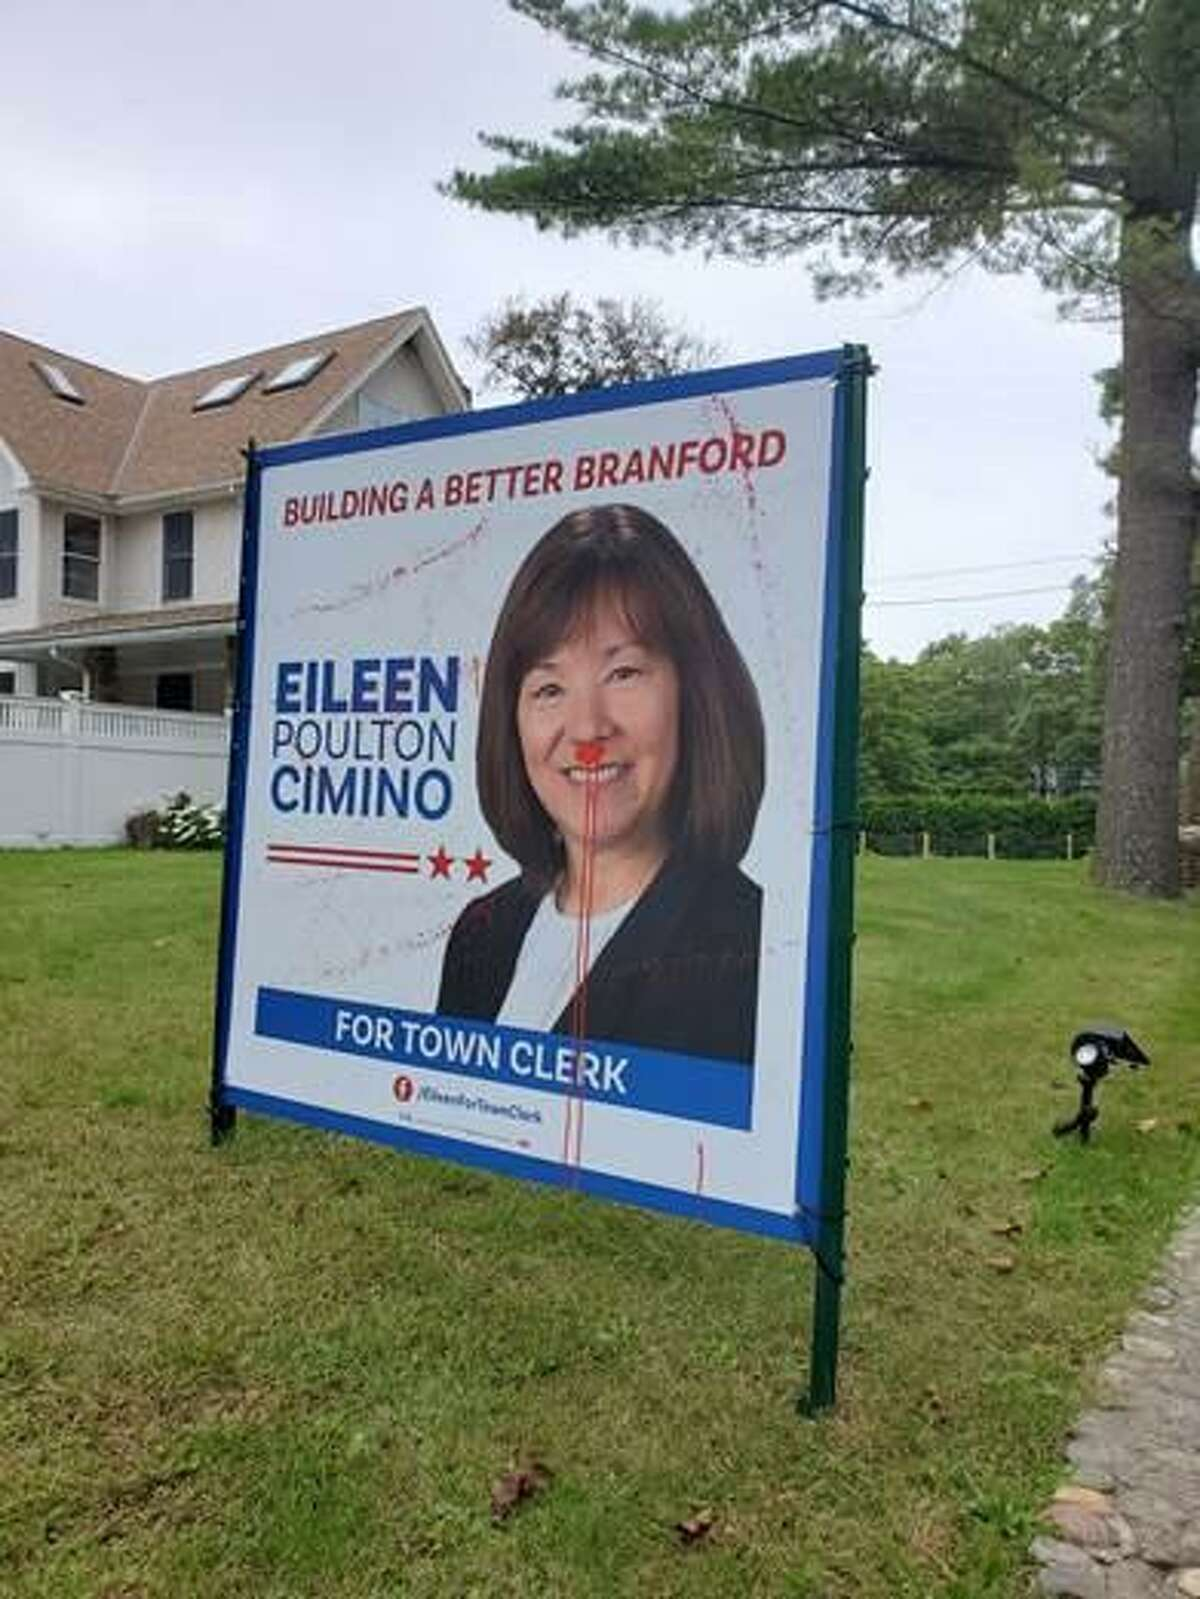 Democrats said this sign for town clerk hopeful Eileen Poulton Cimino was among signs vandalized over the weekend.